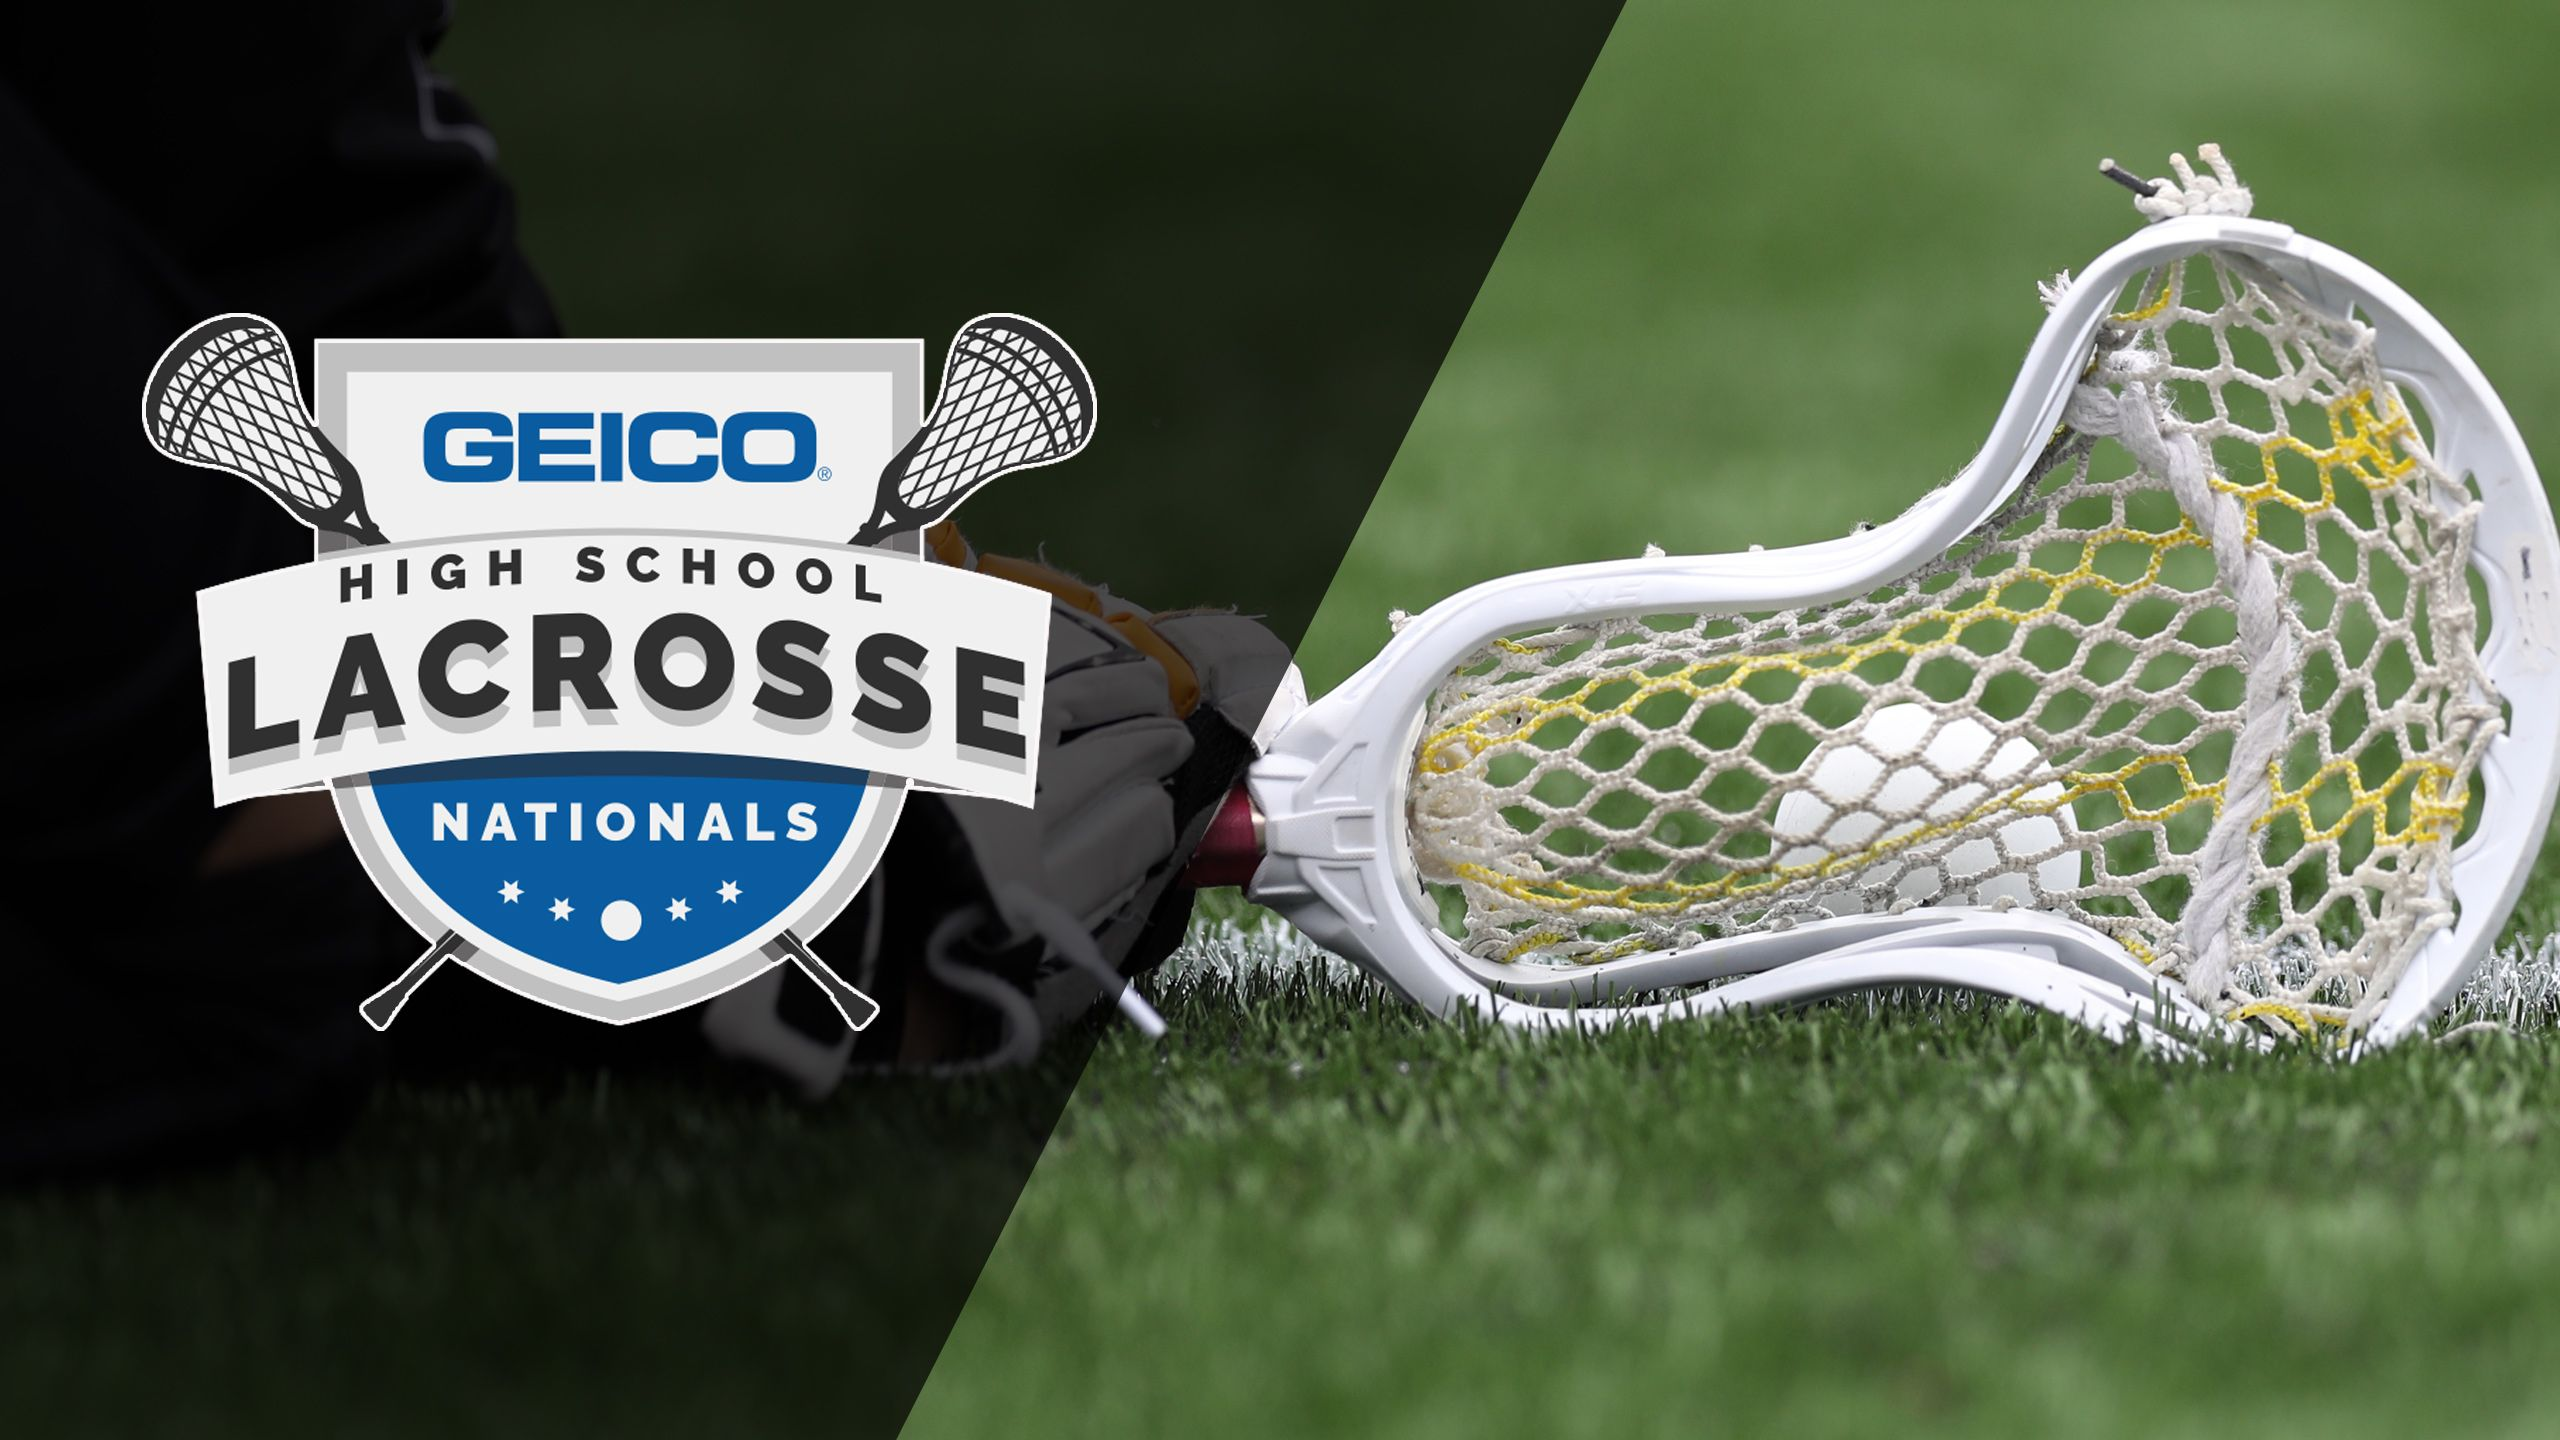 Georgetown Prep (MD) vs. Culver (IN) (Quarterfinal #2) (GEICO High School Lacrosse Nationals)